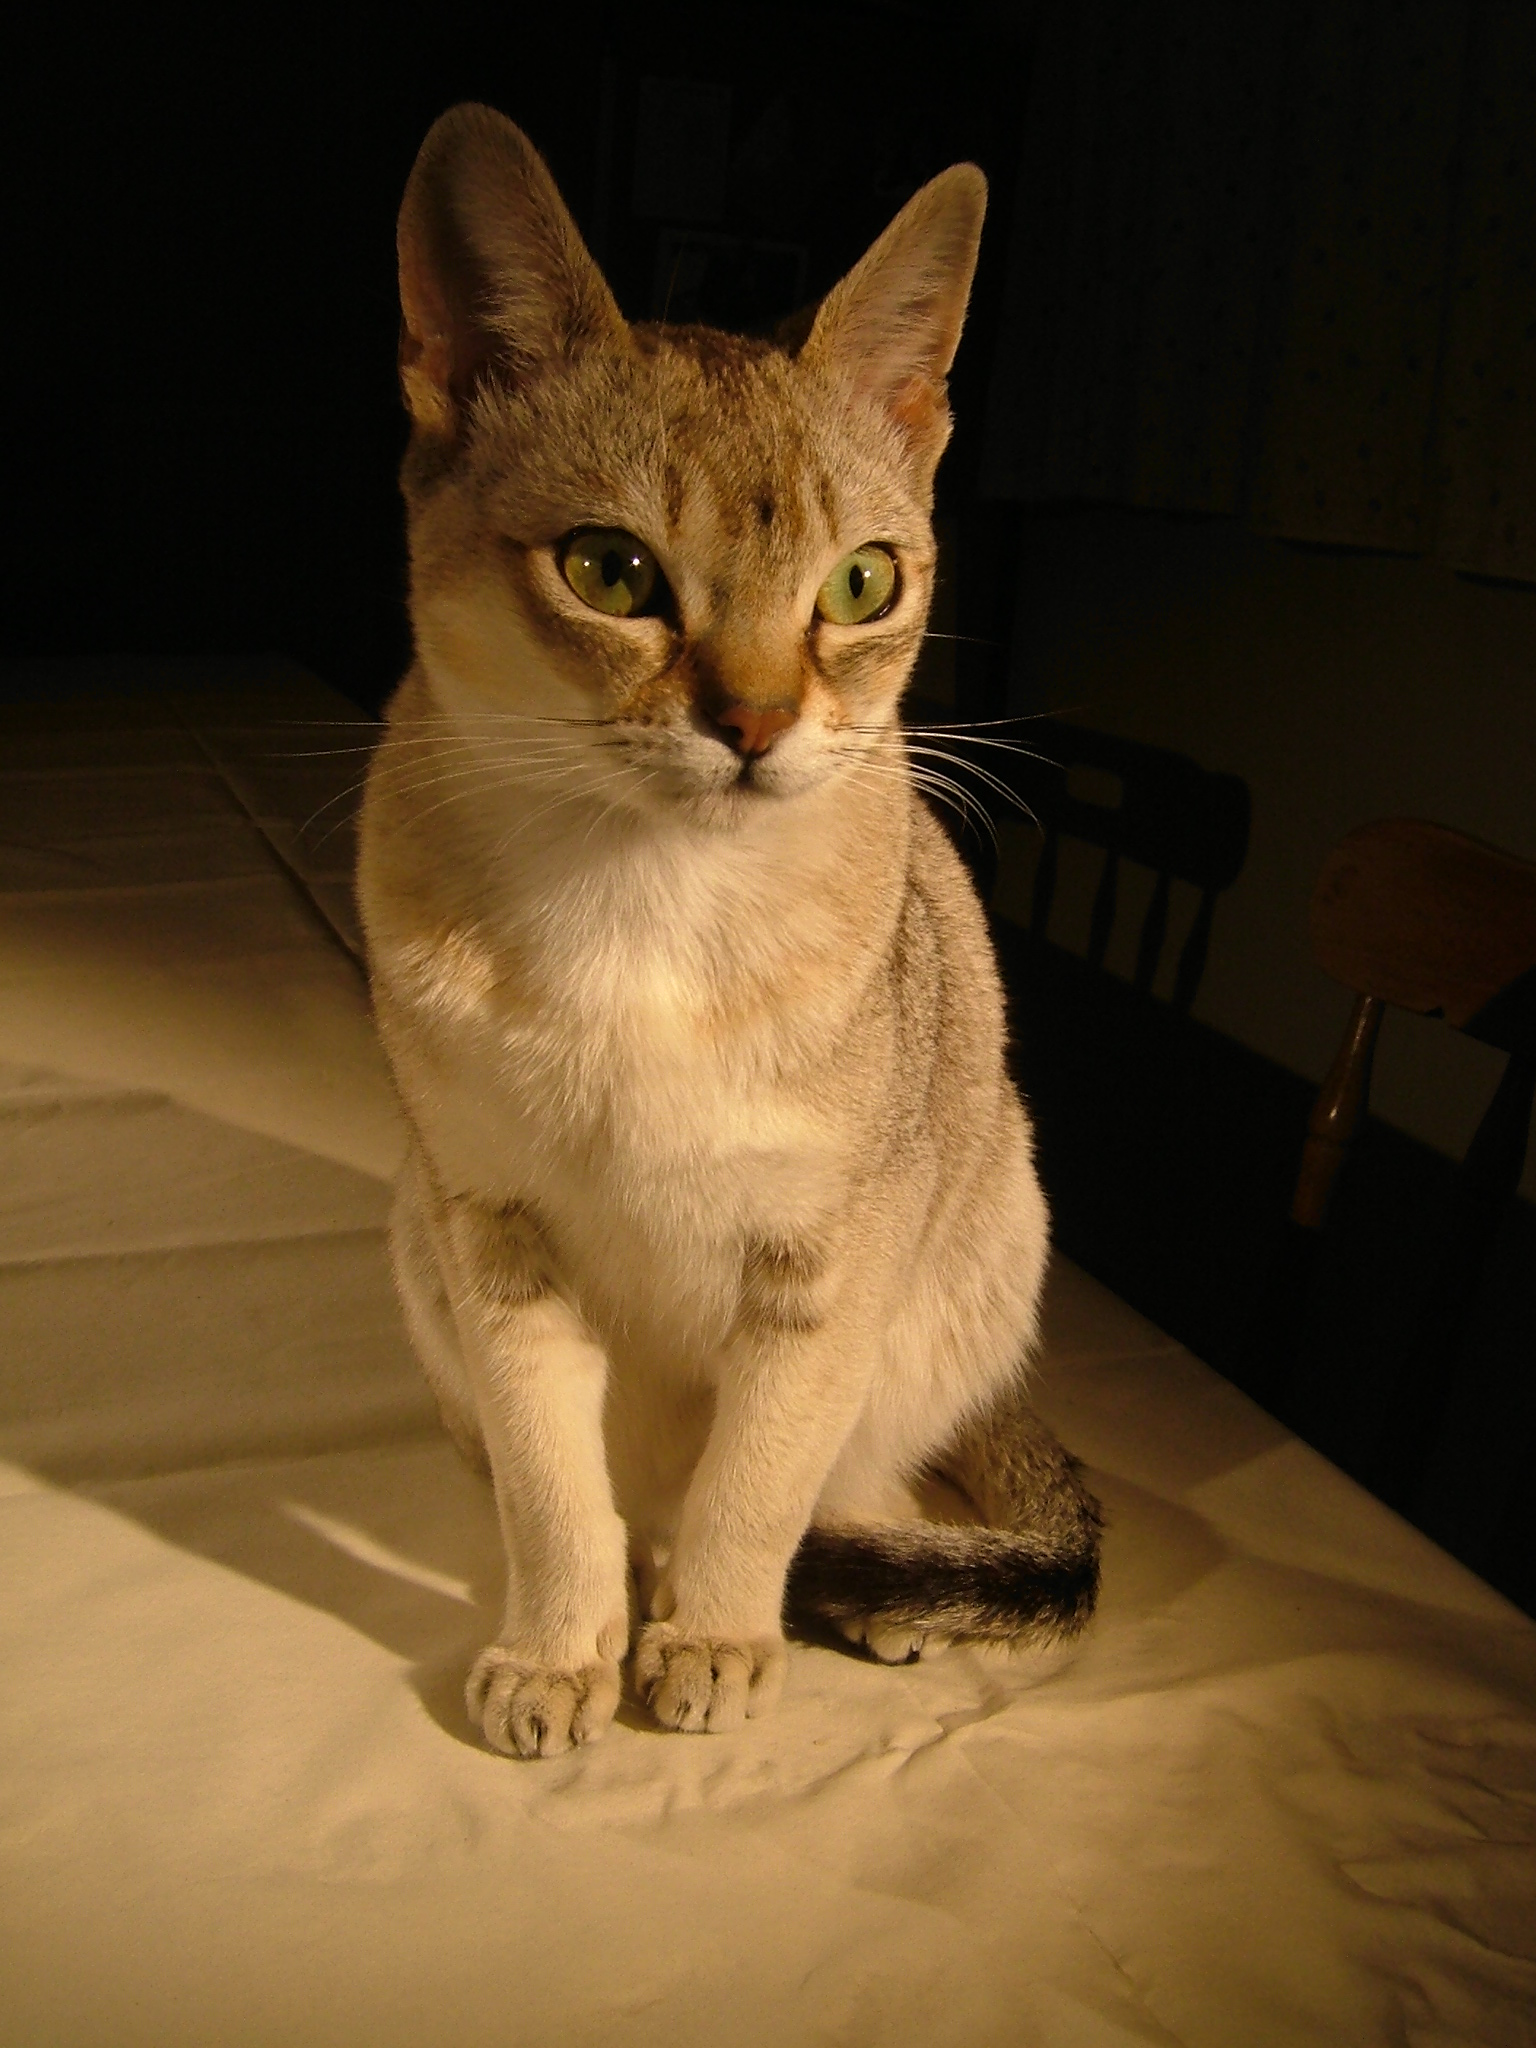 singapura cat pictures Photo